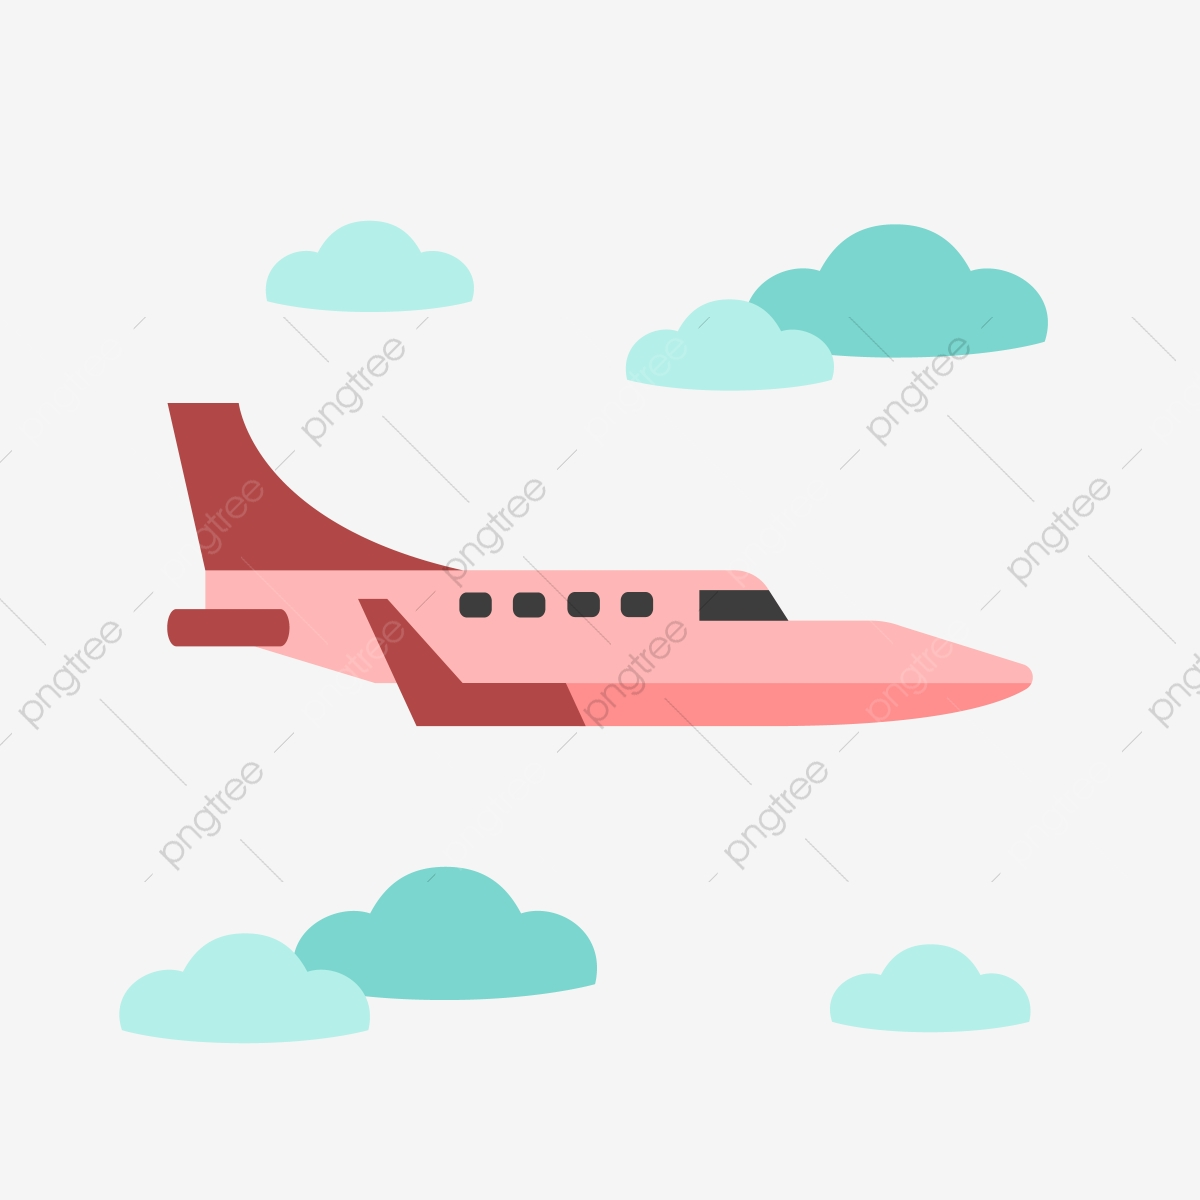 Red Airplane Clipart Red Airplane Clipart Png And Vector With Transparent Background For Free Download